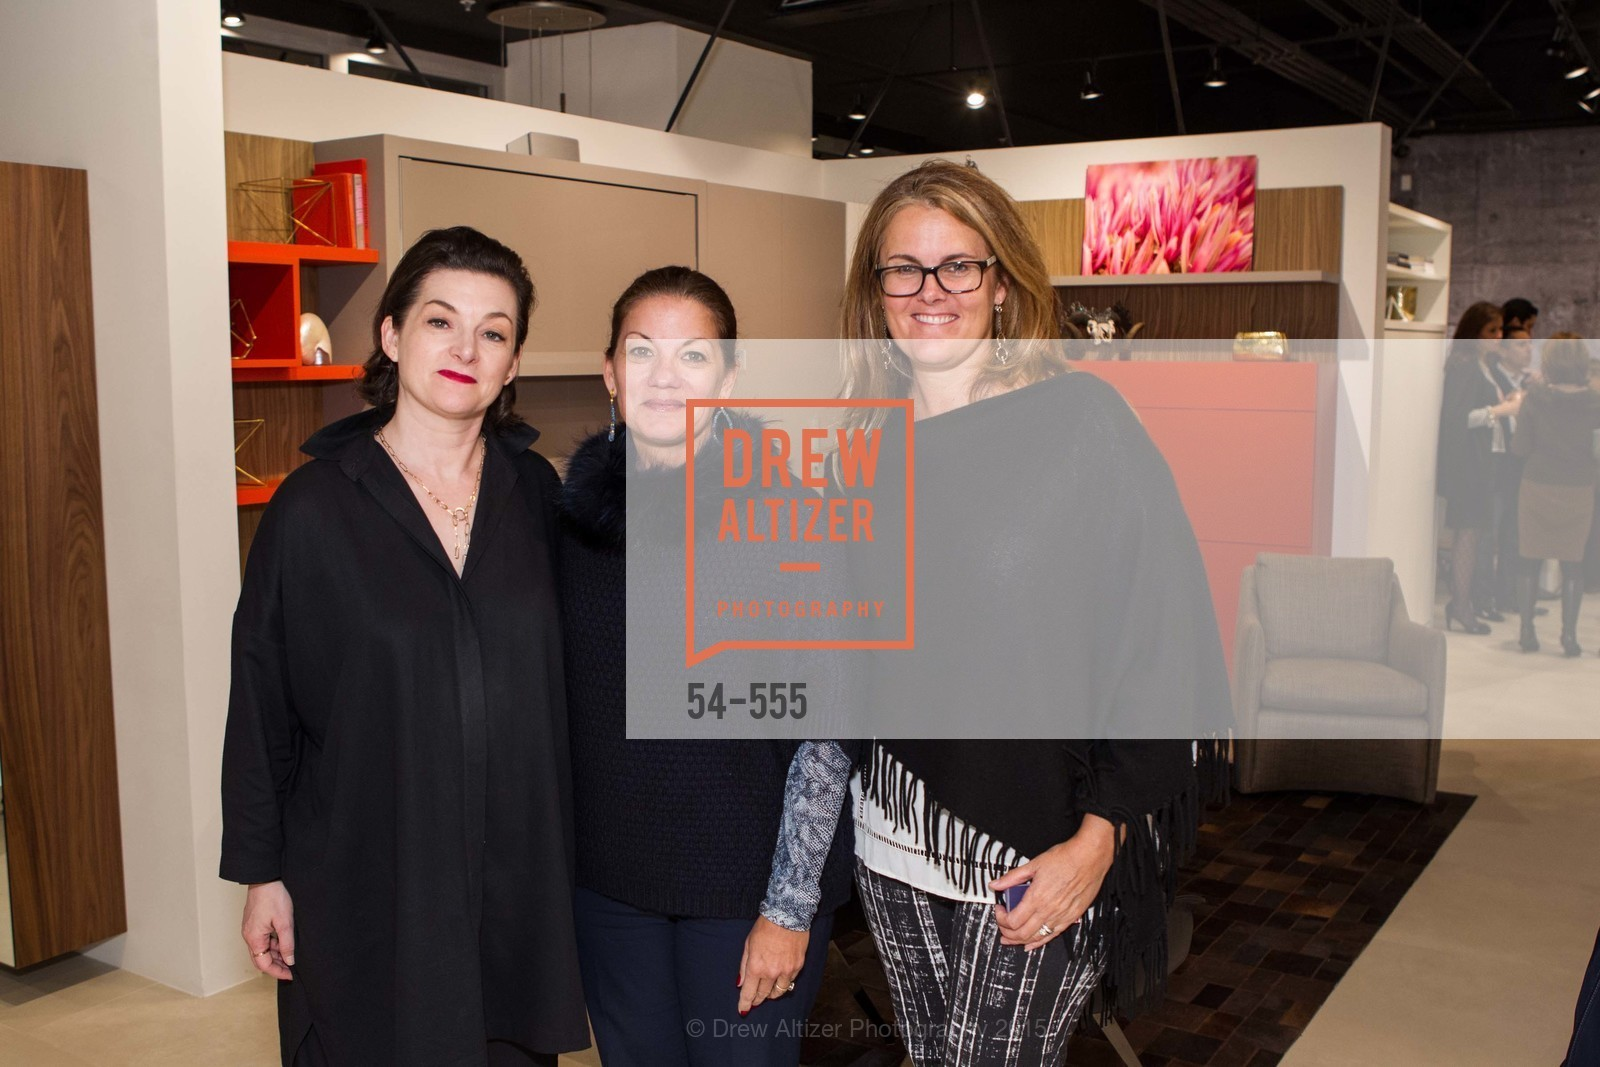 Alisa Carroll, DeForest Wayne, SFC&G Real Estate Survey Reveal, Resource Furniture, November 19th, 2015,Drew Altizer, Drew Altizer Photography, full-service agency, private events, San Francisco photographer, photographer california